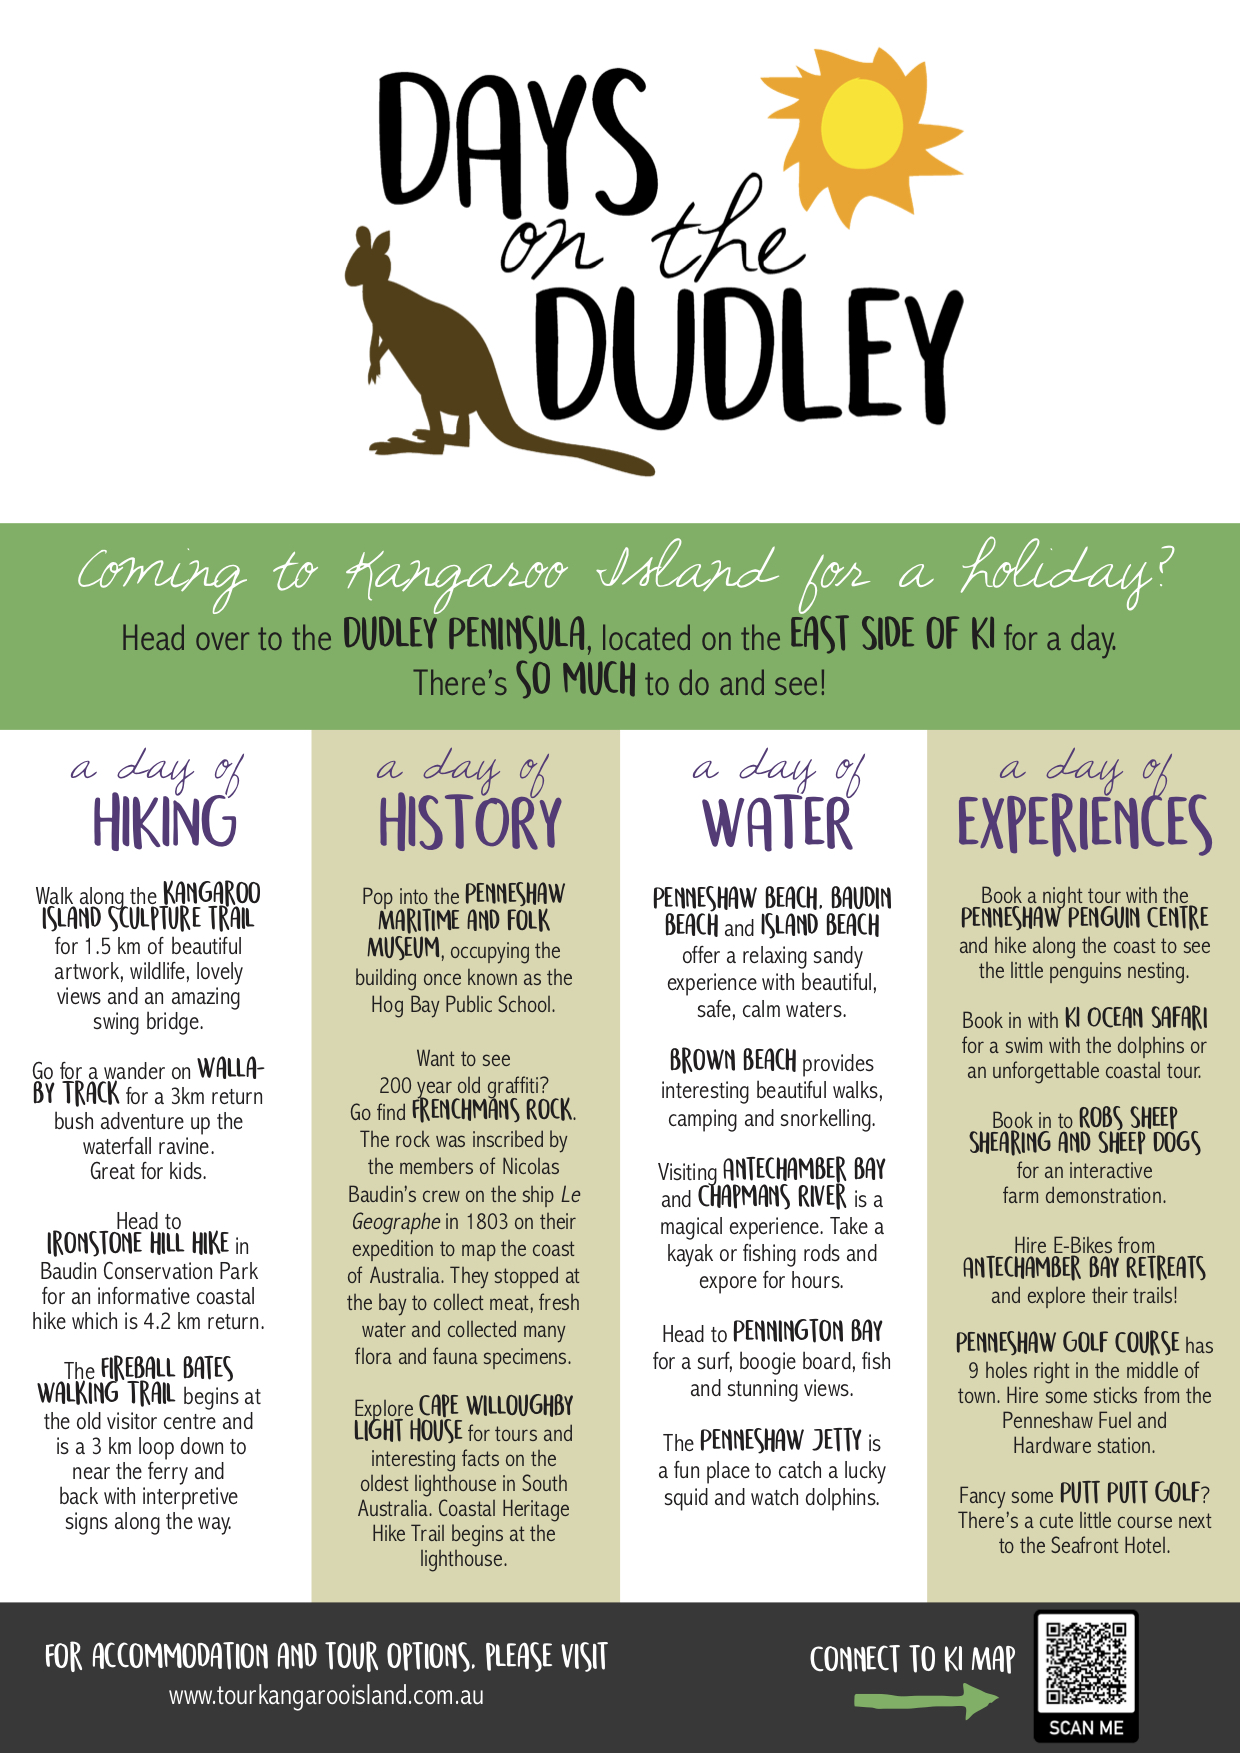 Days on the Dudley